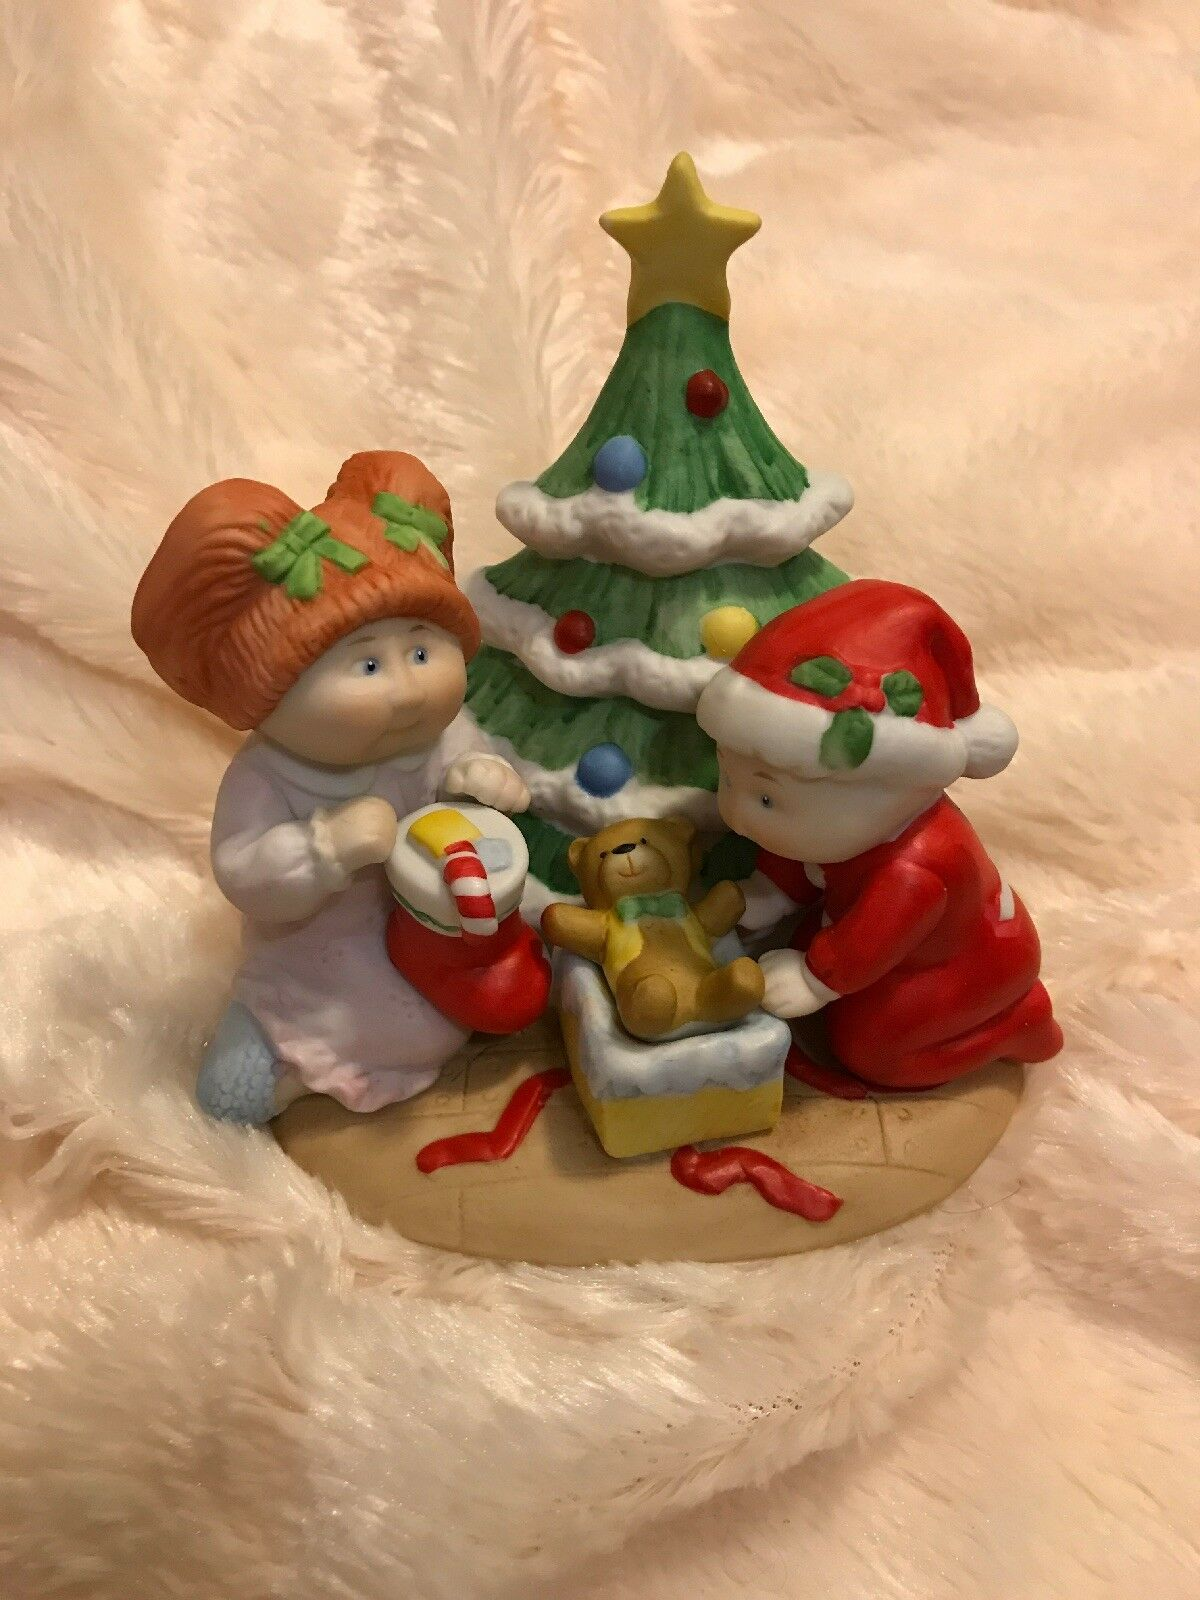 1984 CABBAGE PATCH KIDS Lot Of Of Of 4 Christmas Figurine Statues original Boxes EUC 2fa64e